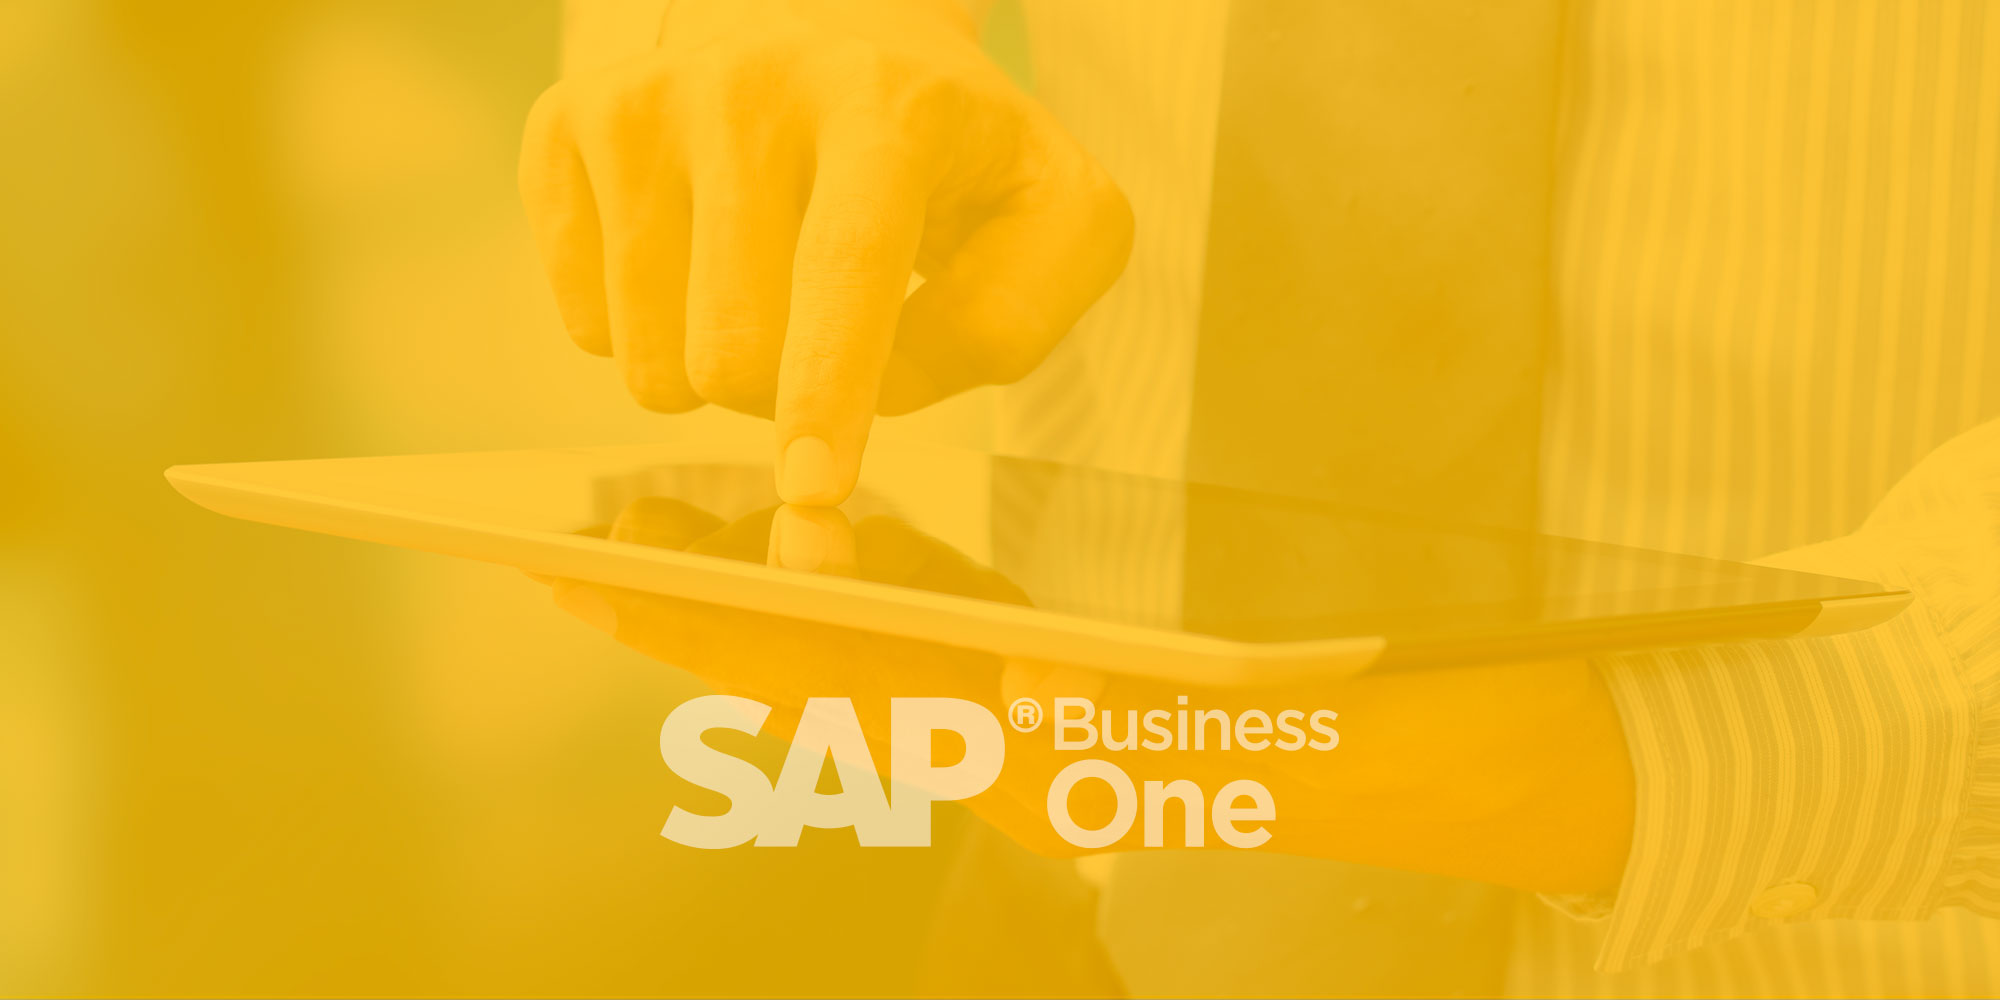 webex sap business one sat